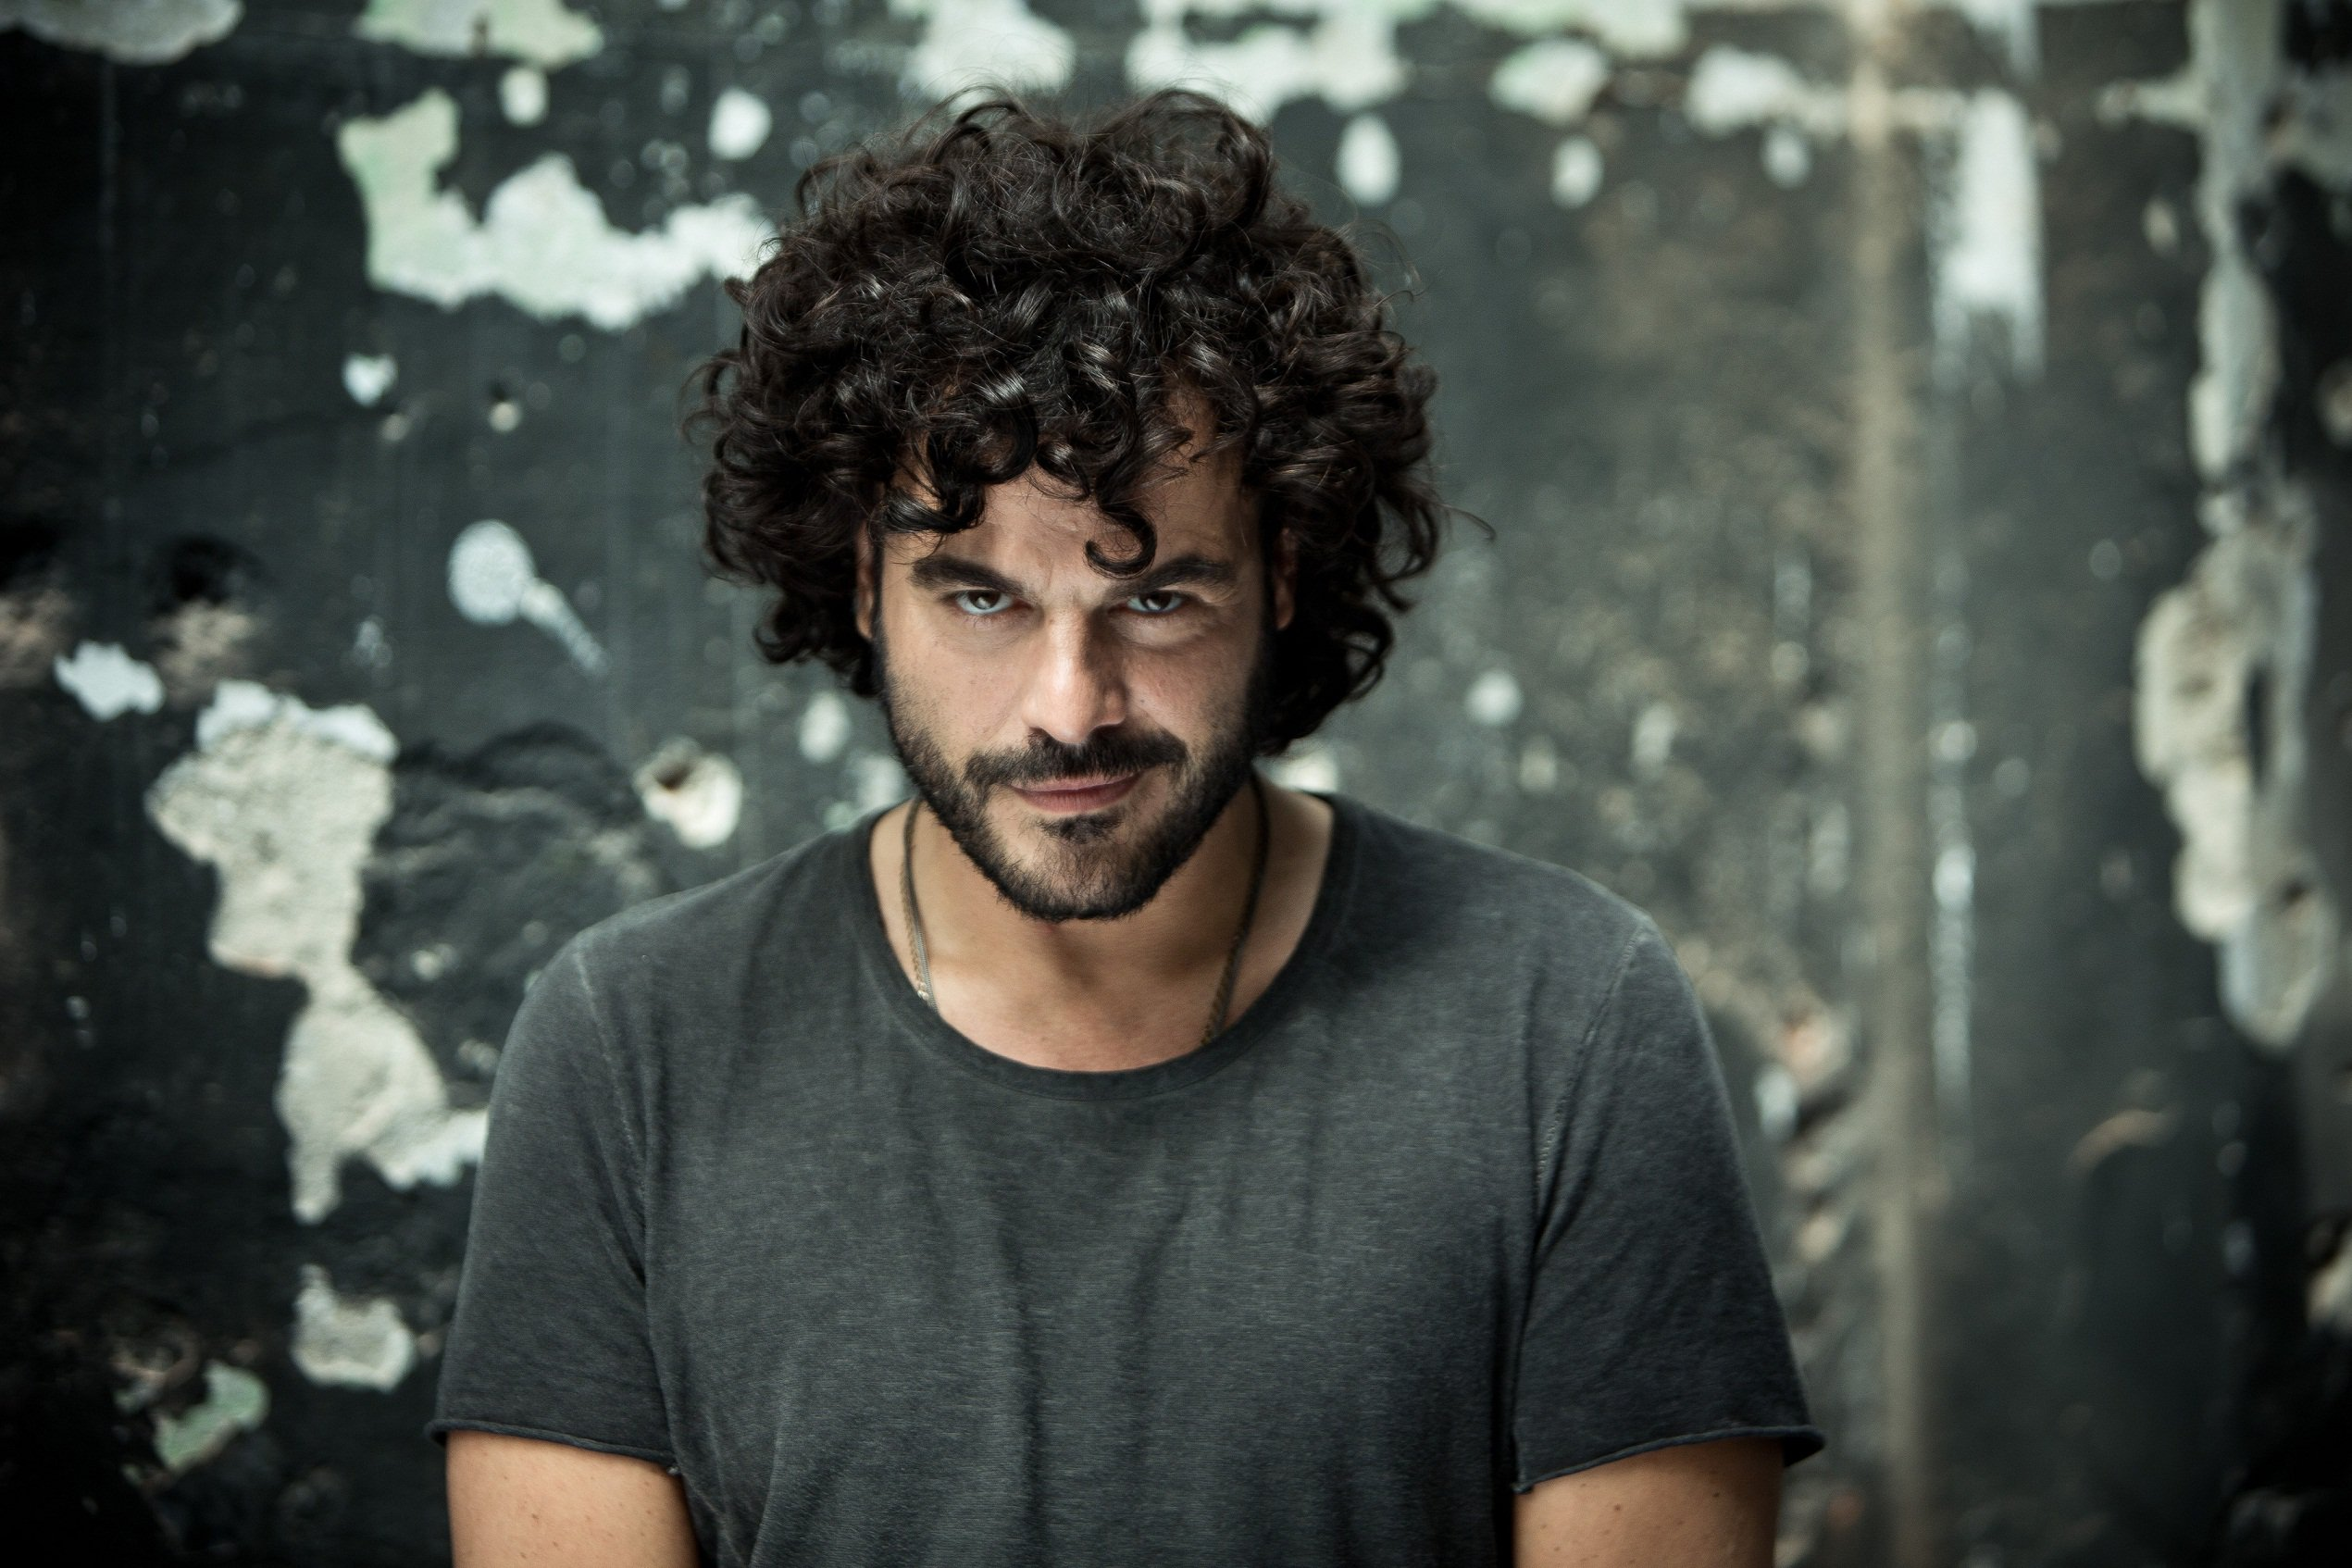 Photo of Classifica Fimi Album: Francesco Renga debutta alla 1!